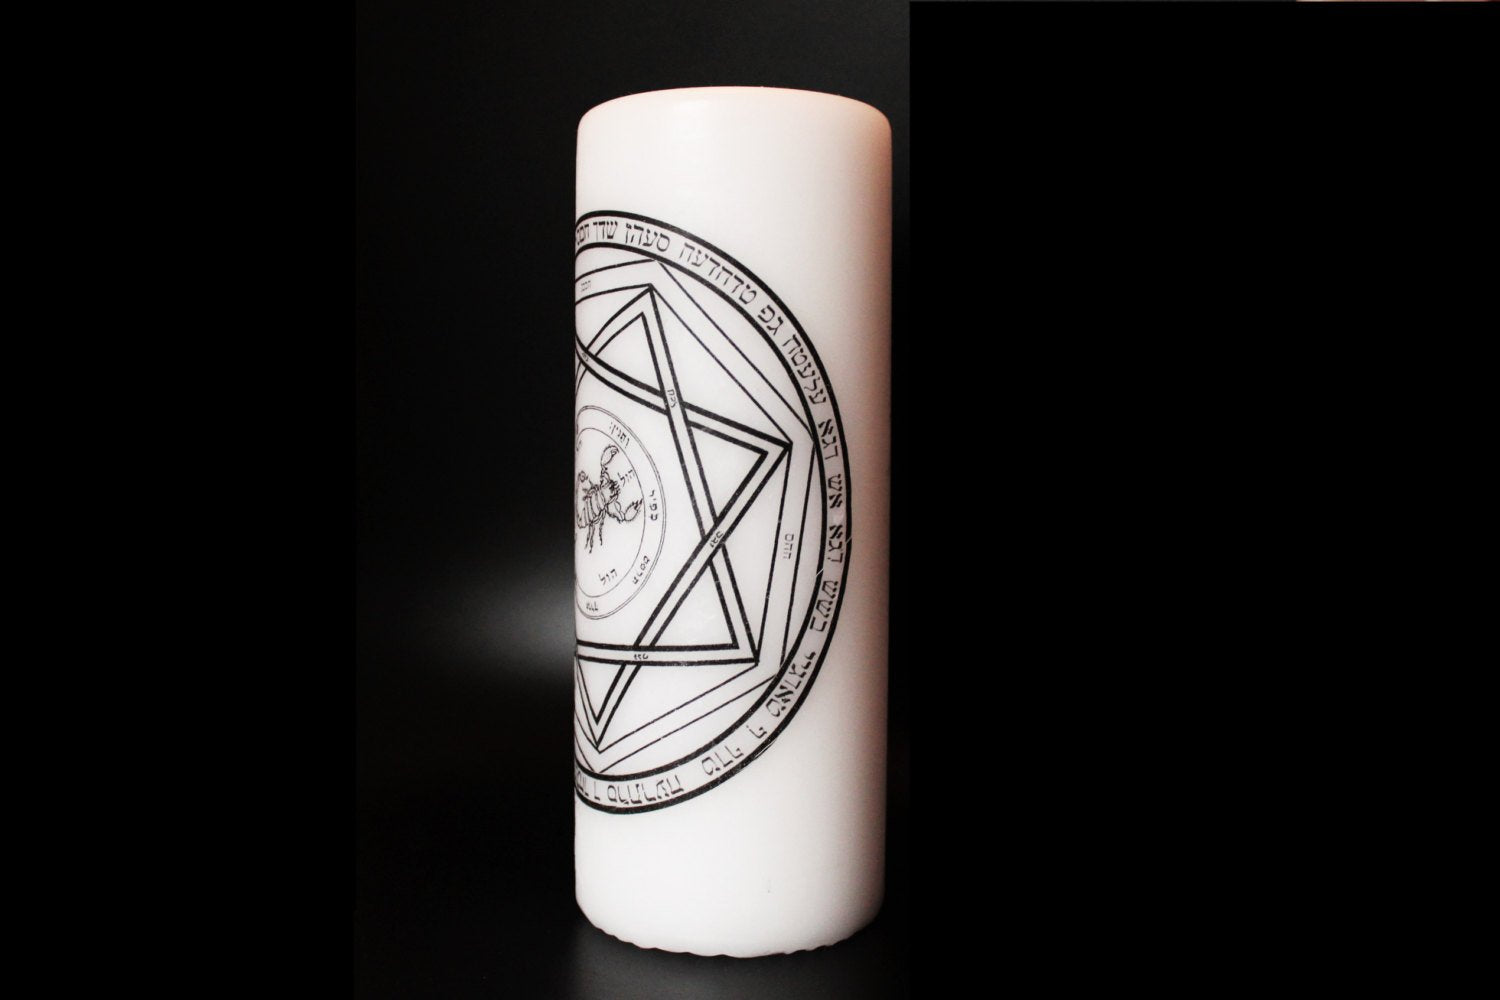 Devils Trap - Supernatural - Pillar Candle - Goth Decor Decor - ByCandlelight27